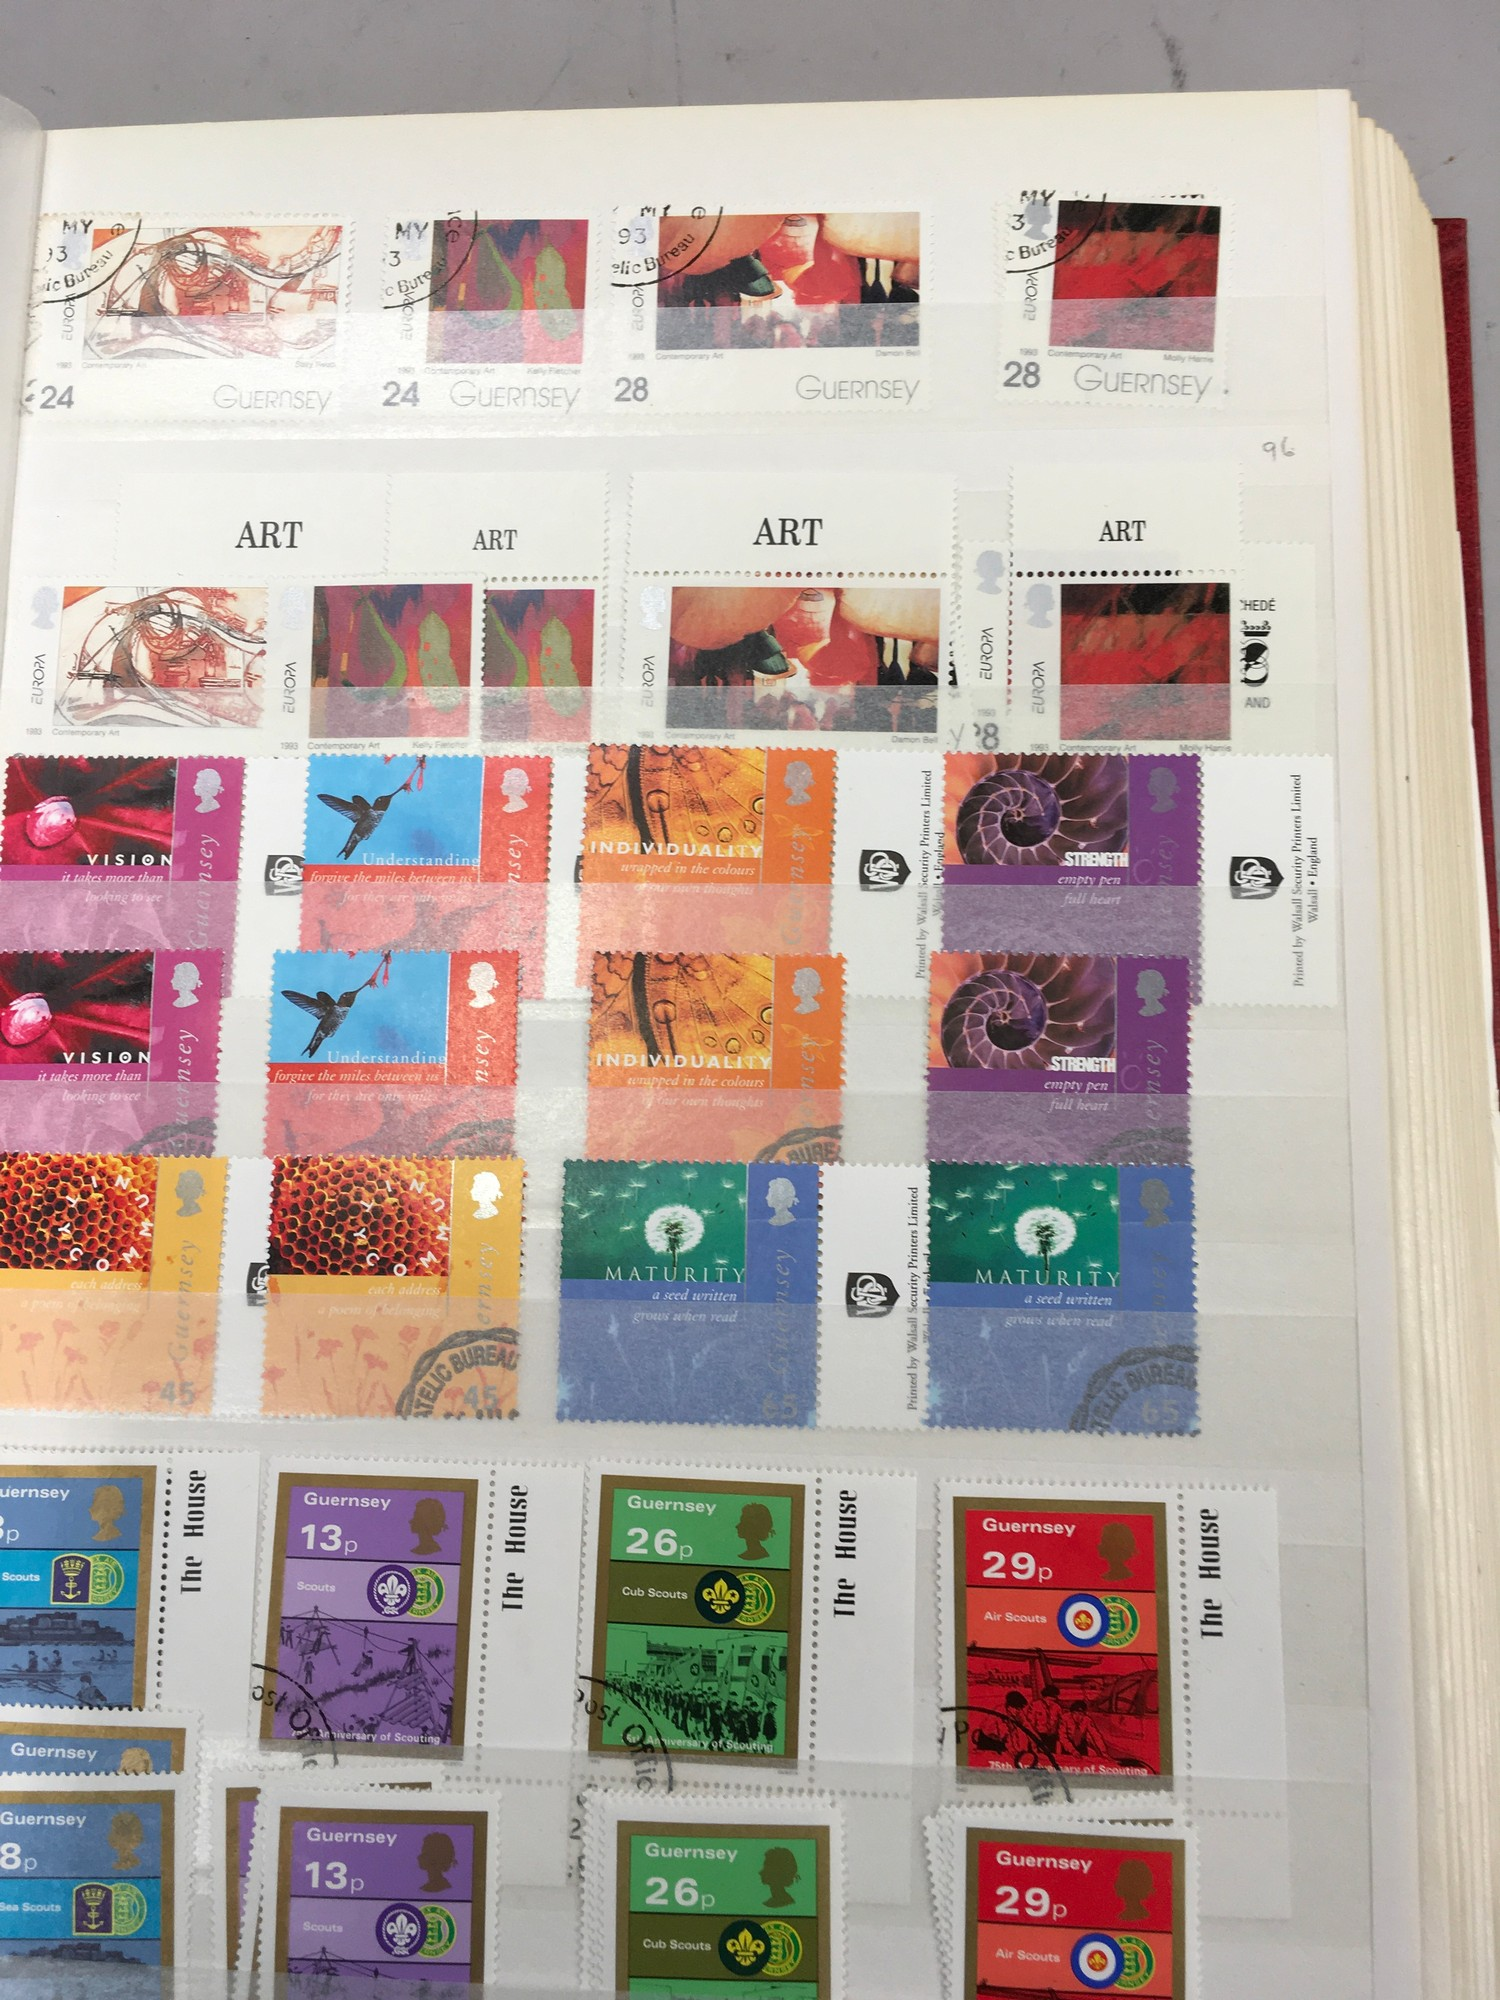 3 x Albums containing Channel Islands, Jersey Guernsey and Alderney over £800 in mint stamps. - Image 4 of 21